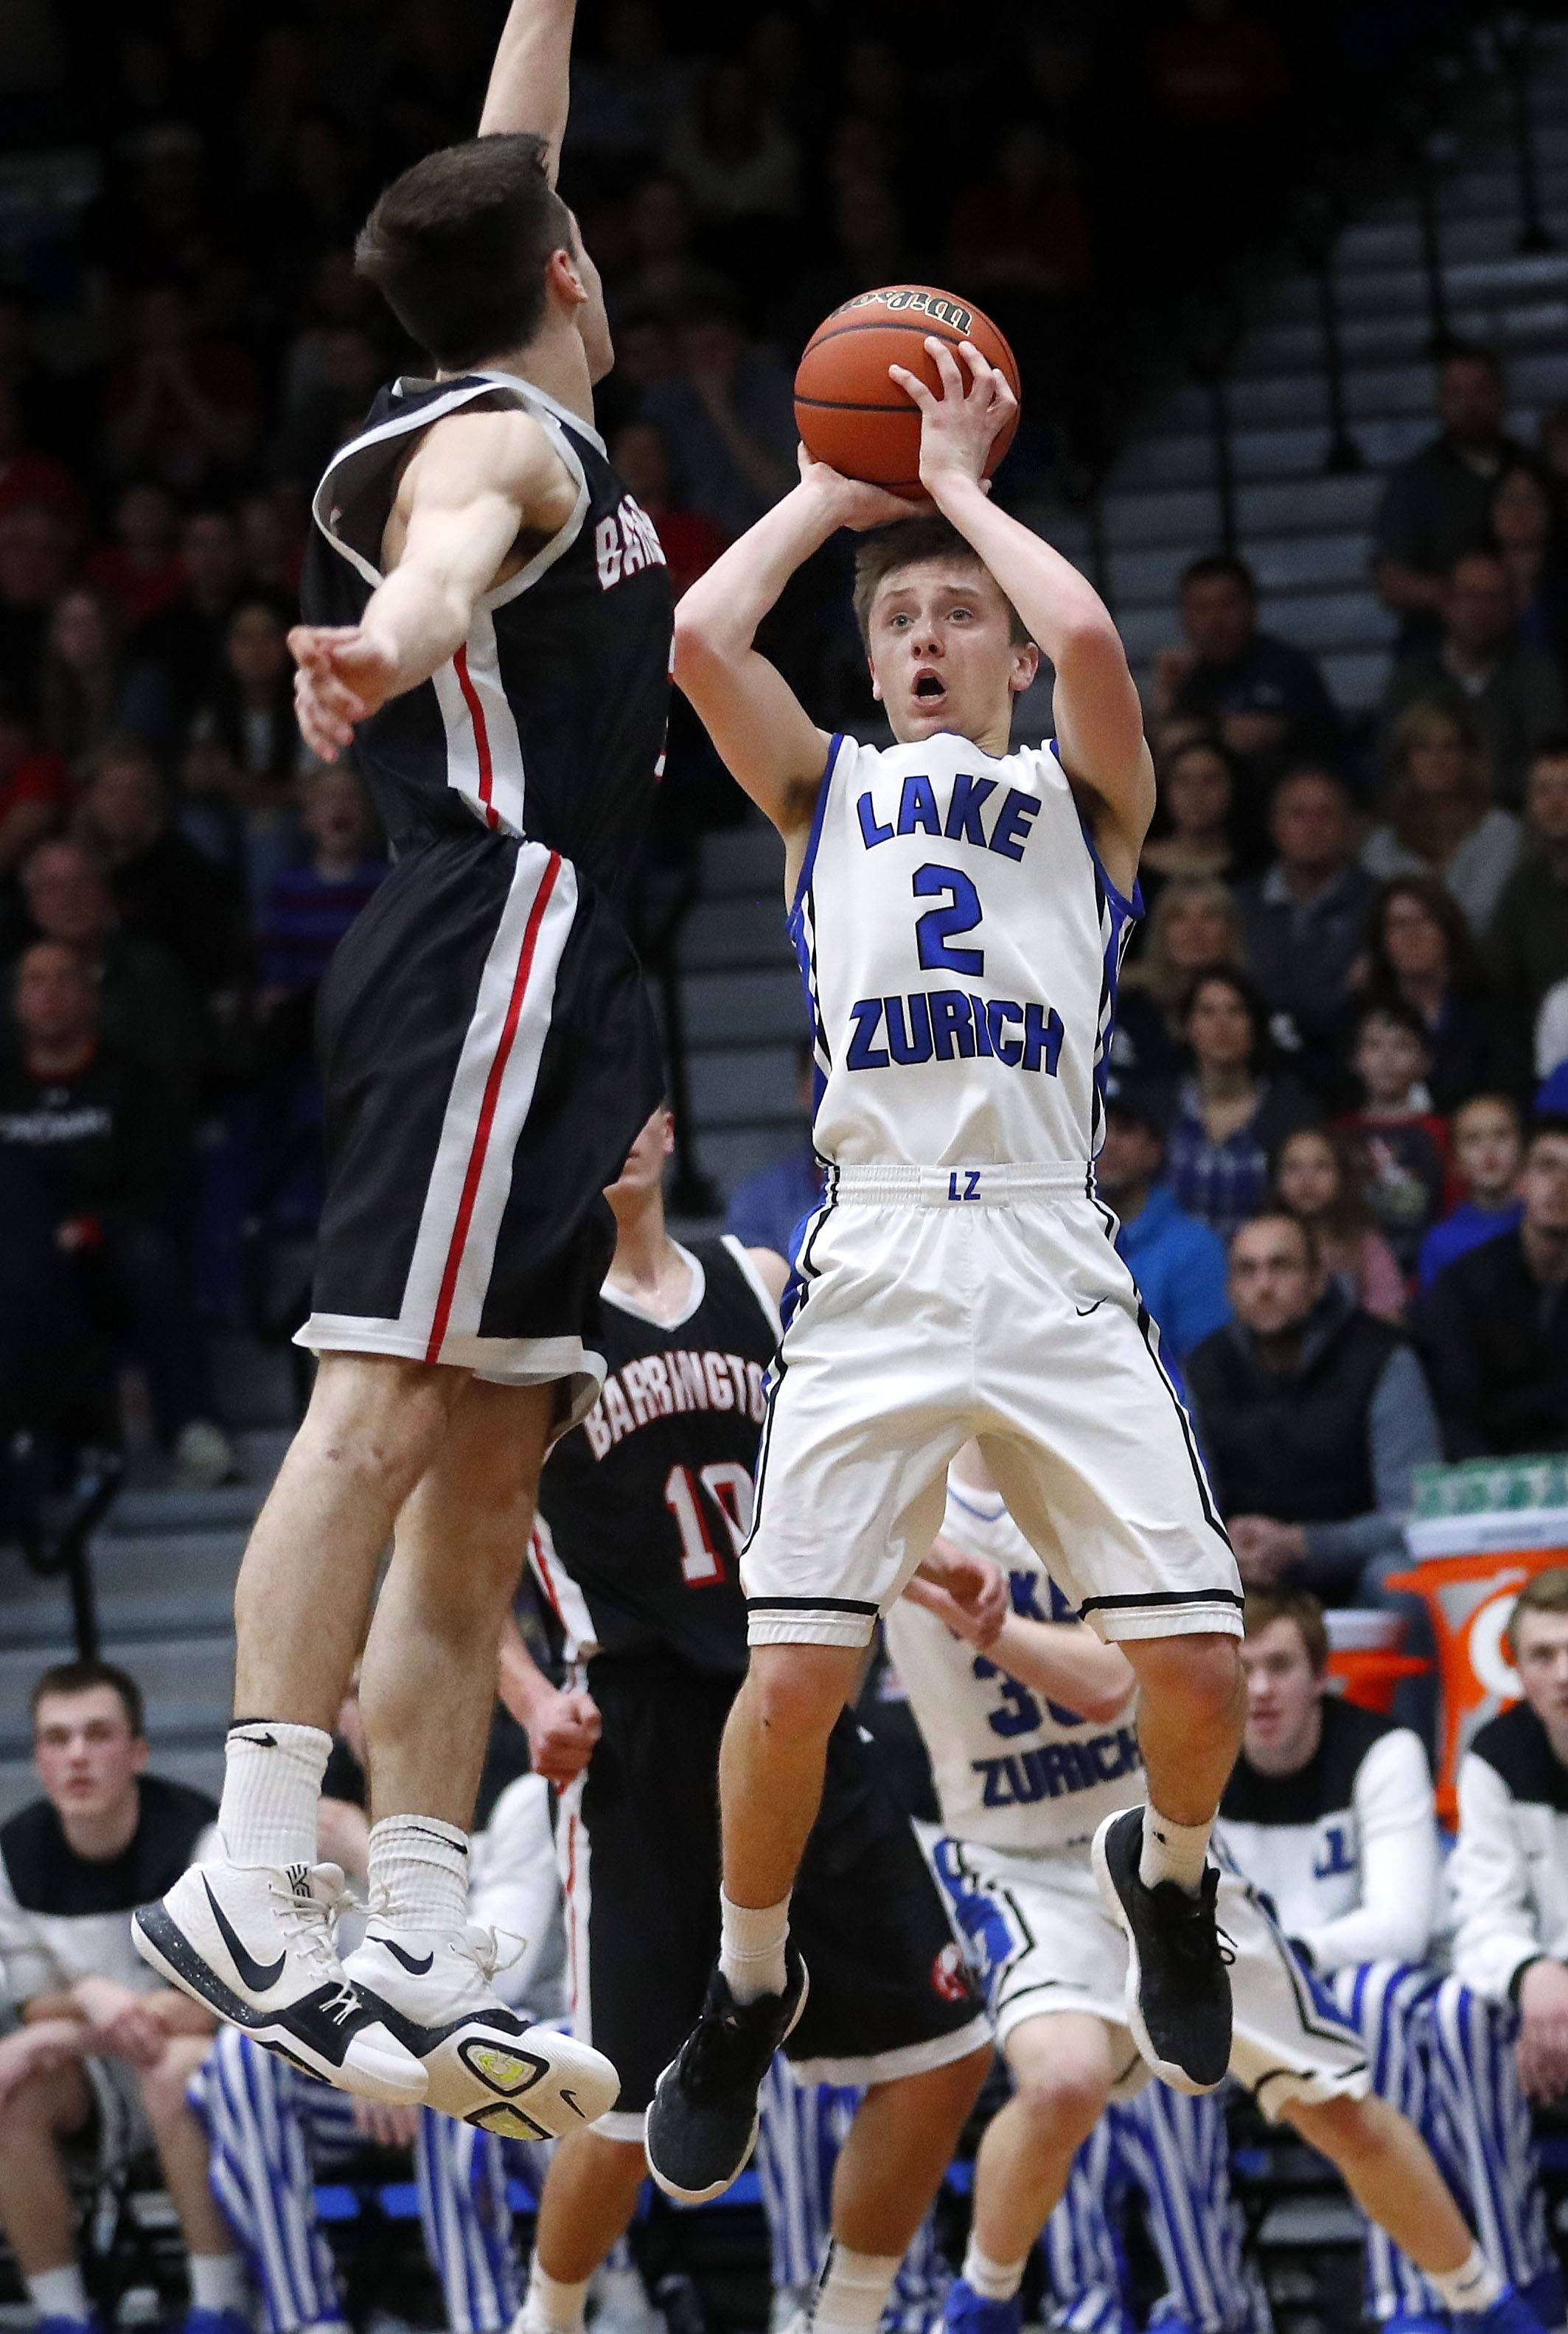 Lake Zurich's JR Cison shoots over Barrington's Mark Johnson during the Class 4A sectional final at Lake Zurich on Friday.